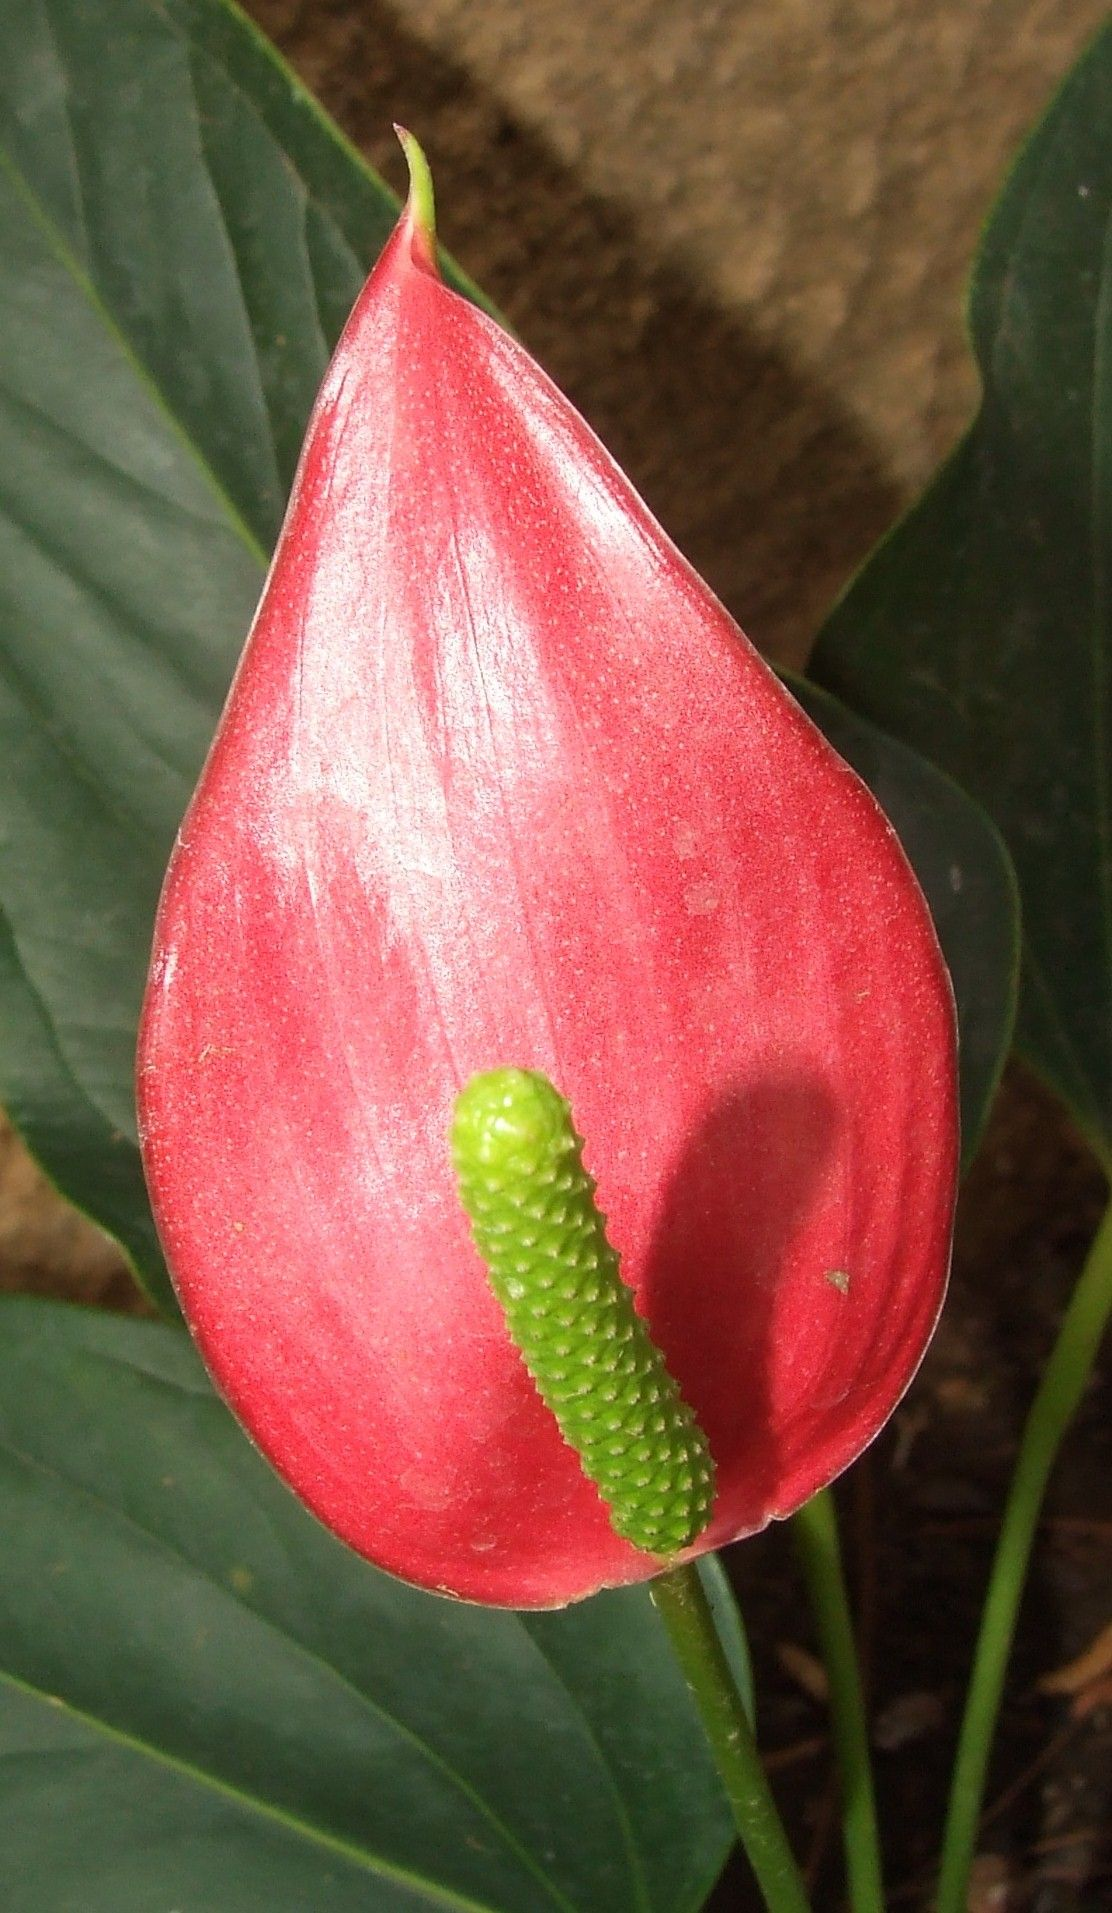 red Peace Lily | Flowers I grew in Africa | Peace lily flower, Peace on low light zz plant, philodendron house plant, lily of the valley plant, spathiphyllum plant, chinese evergreen indoor plant, peace prayer lily plant, lily with beta fish plant, red with a lily like plant bloom, wedding peace lily plant,